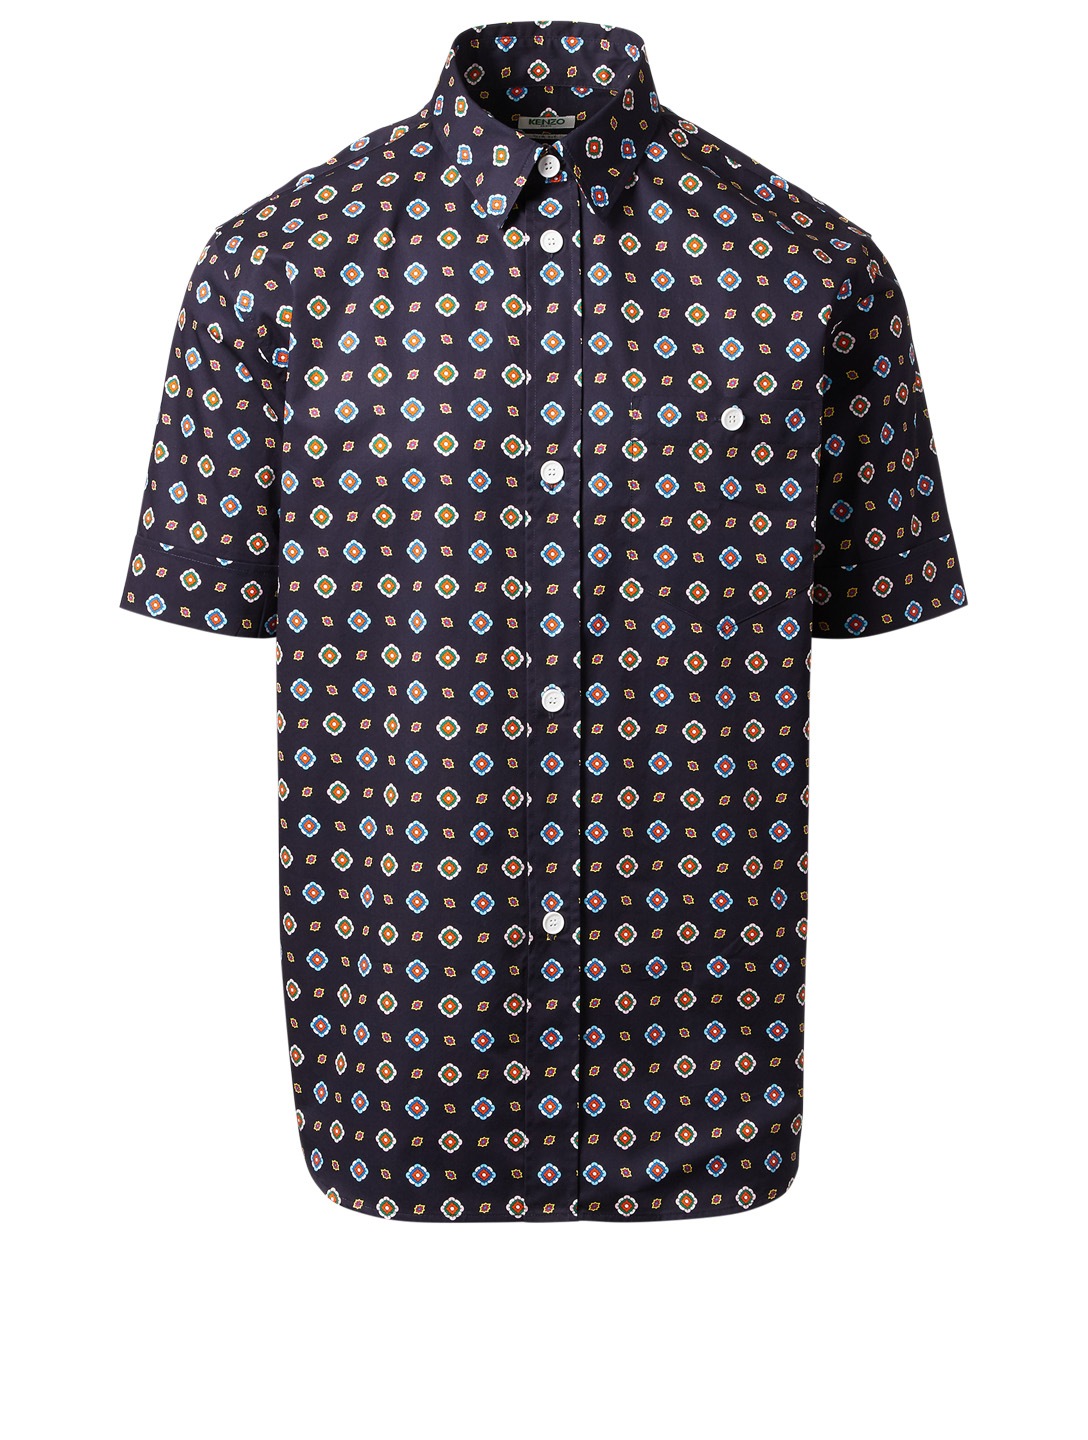 KENZO Short Sleeve Shirt In Medallion Print Men's Blue